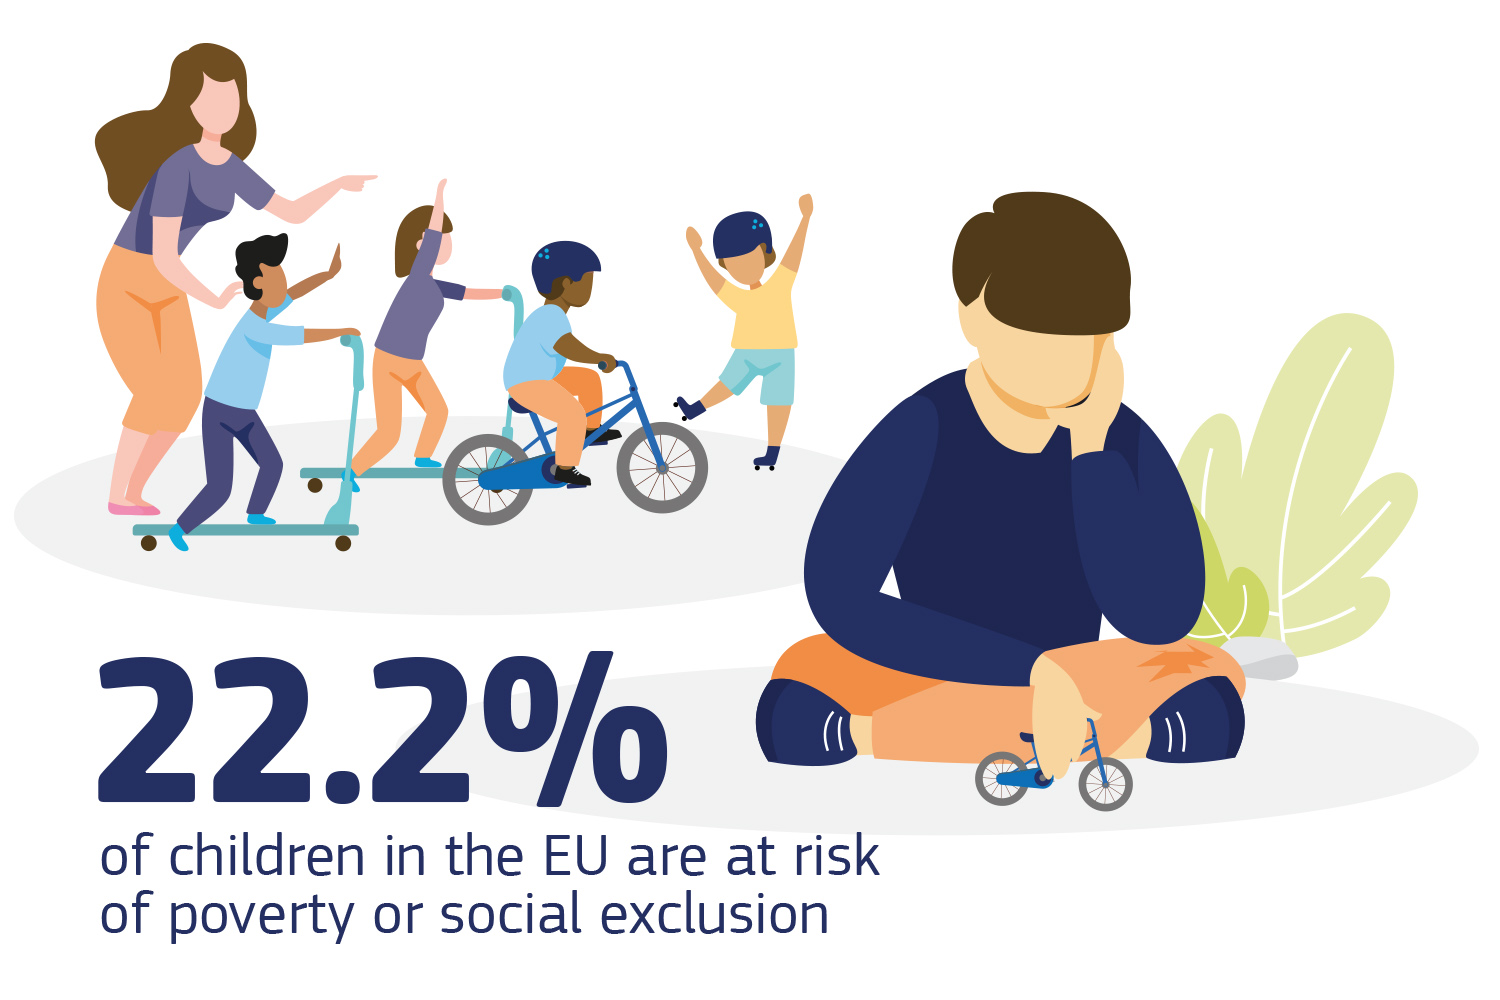 22.2% of children in the EU are at risk of poverty or social exclusion